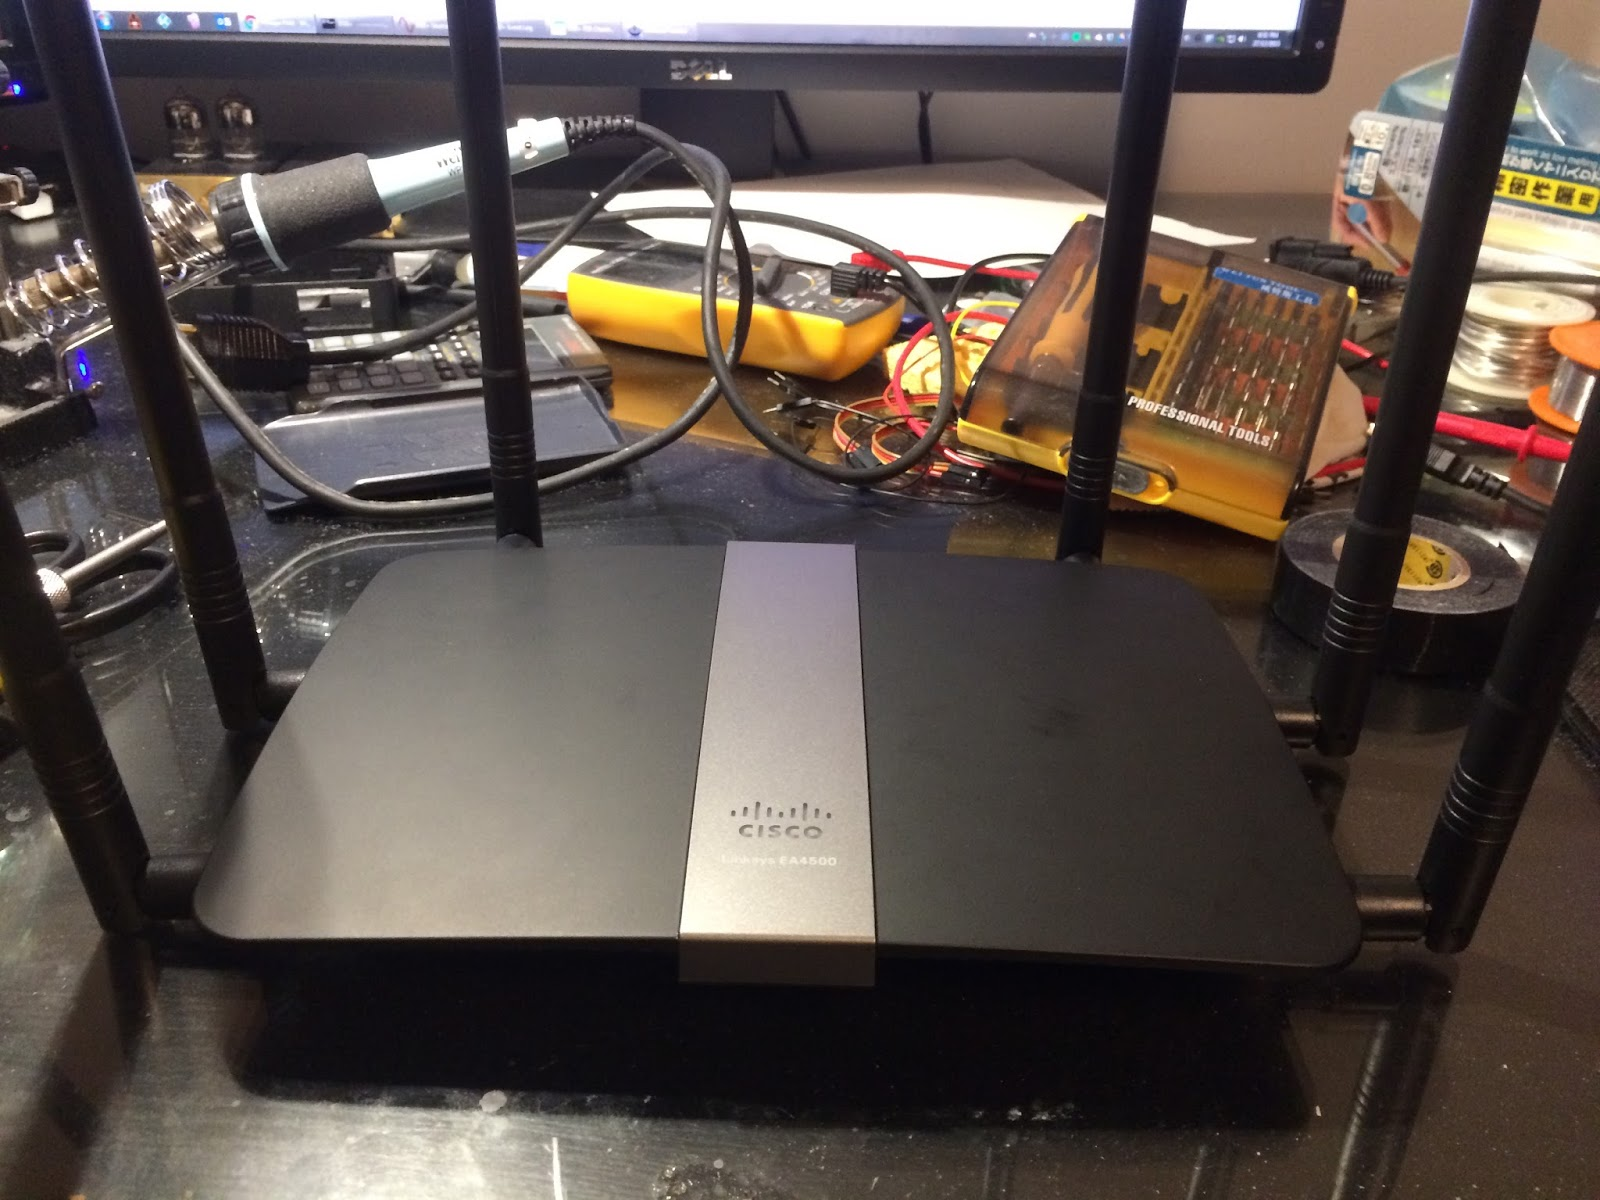 9dBi Antenna Modification on Linksys EA4500 Wireless Router